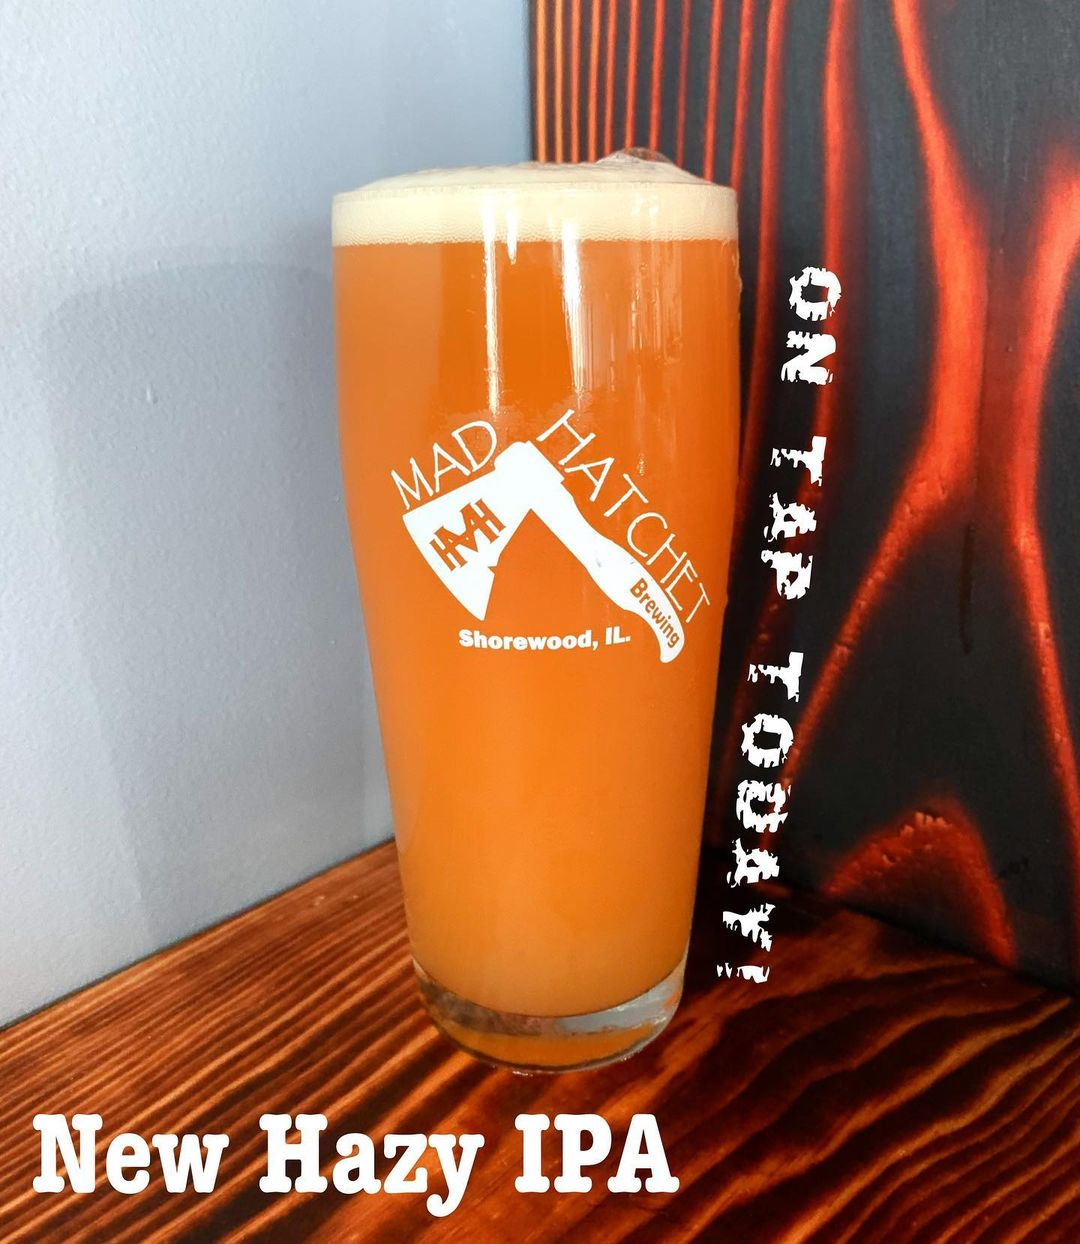 Glass of orange beer with text on tap today . new hazy ipa .. .from Mad Hatchet